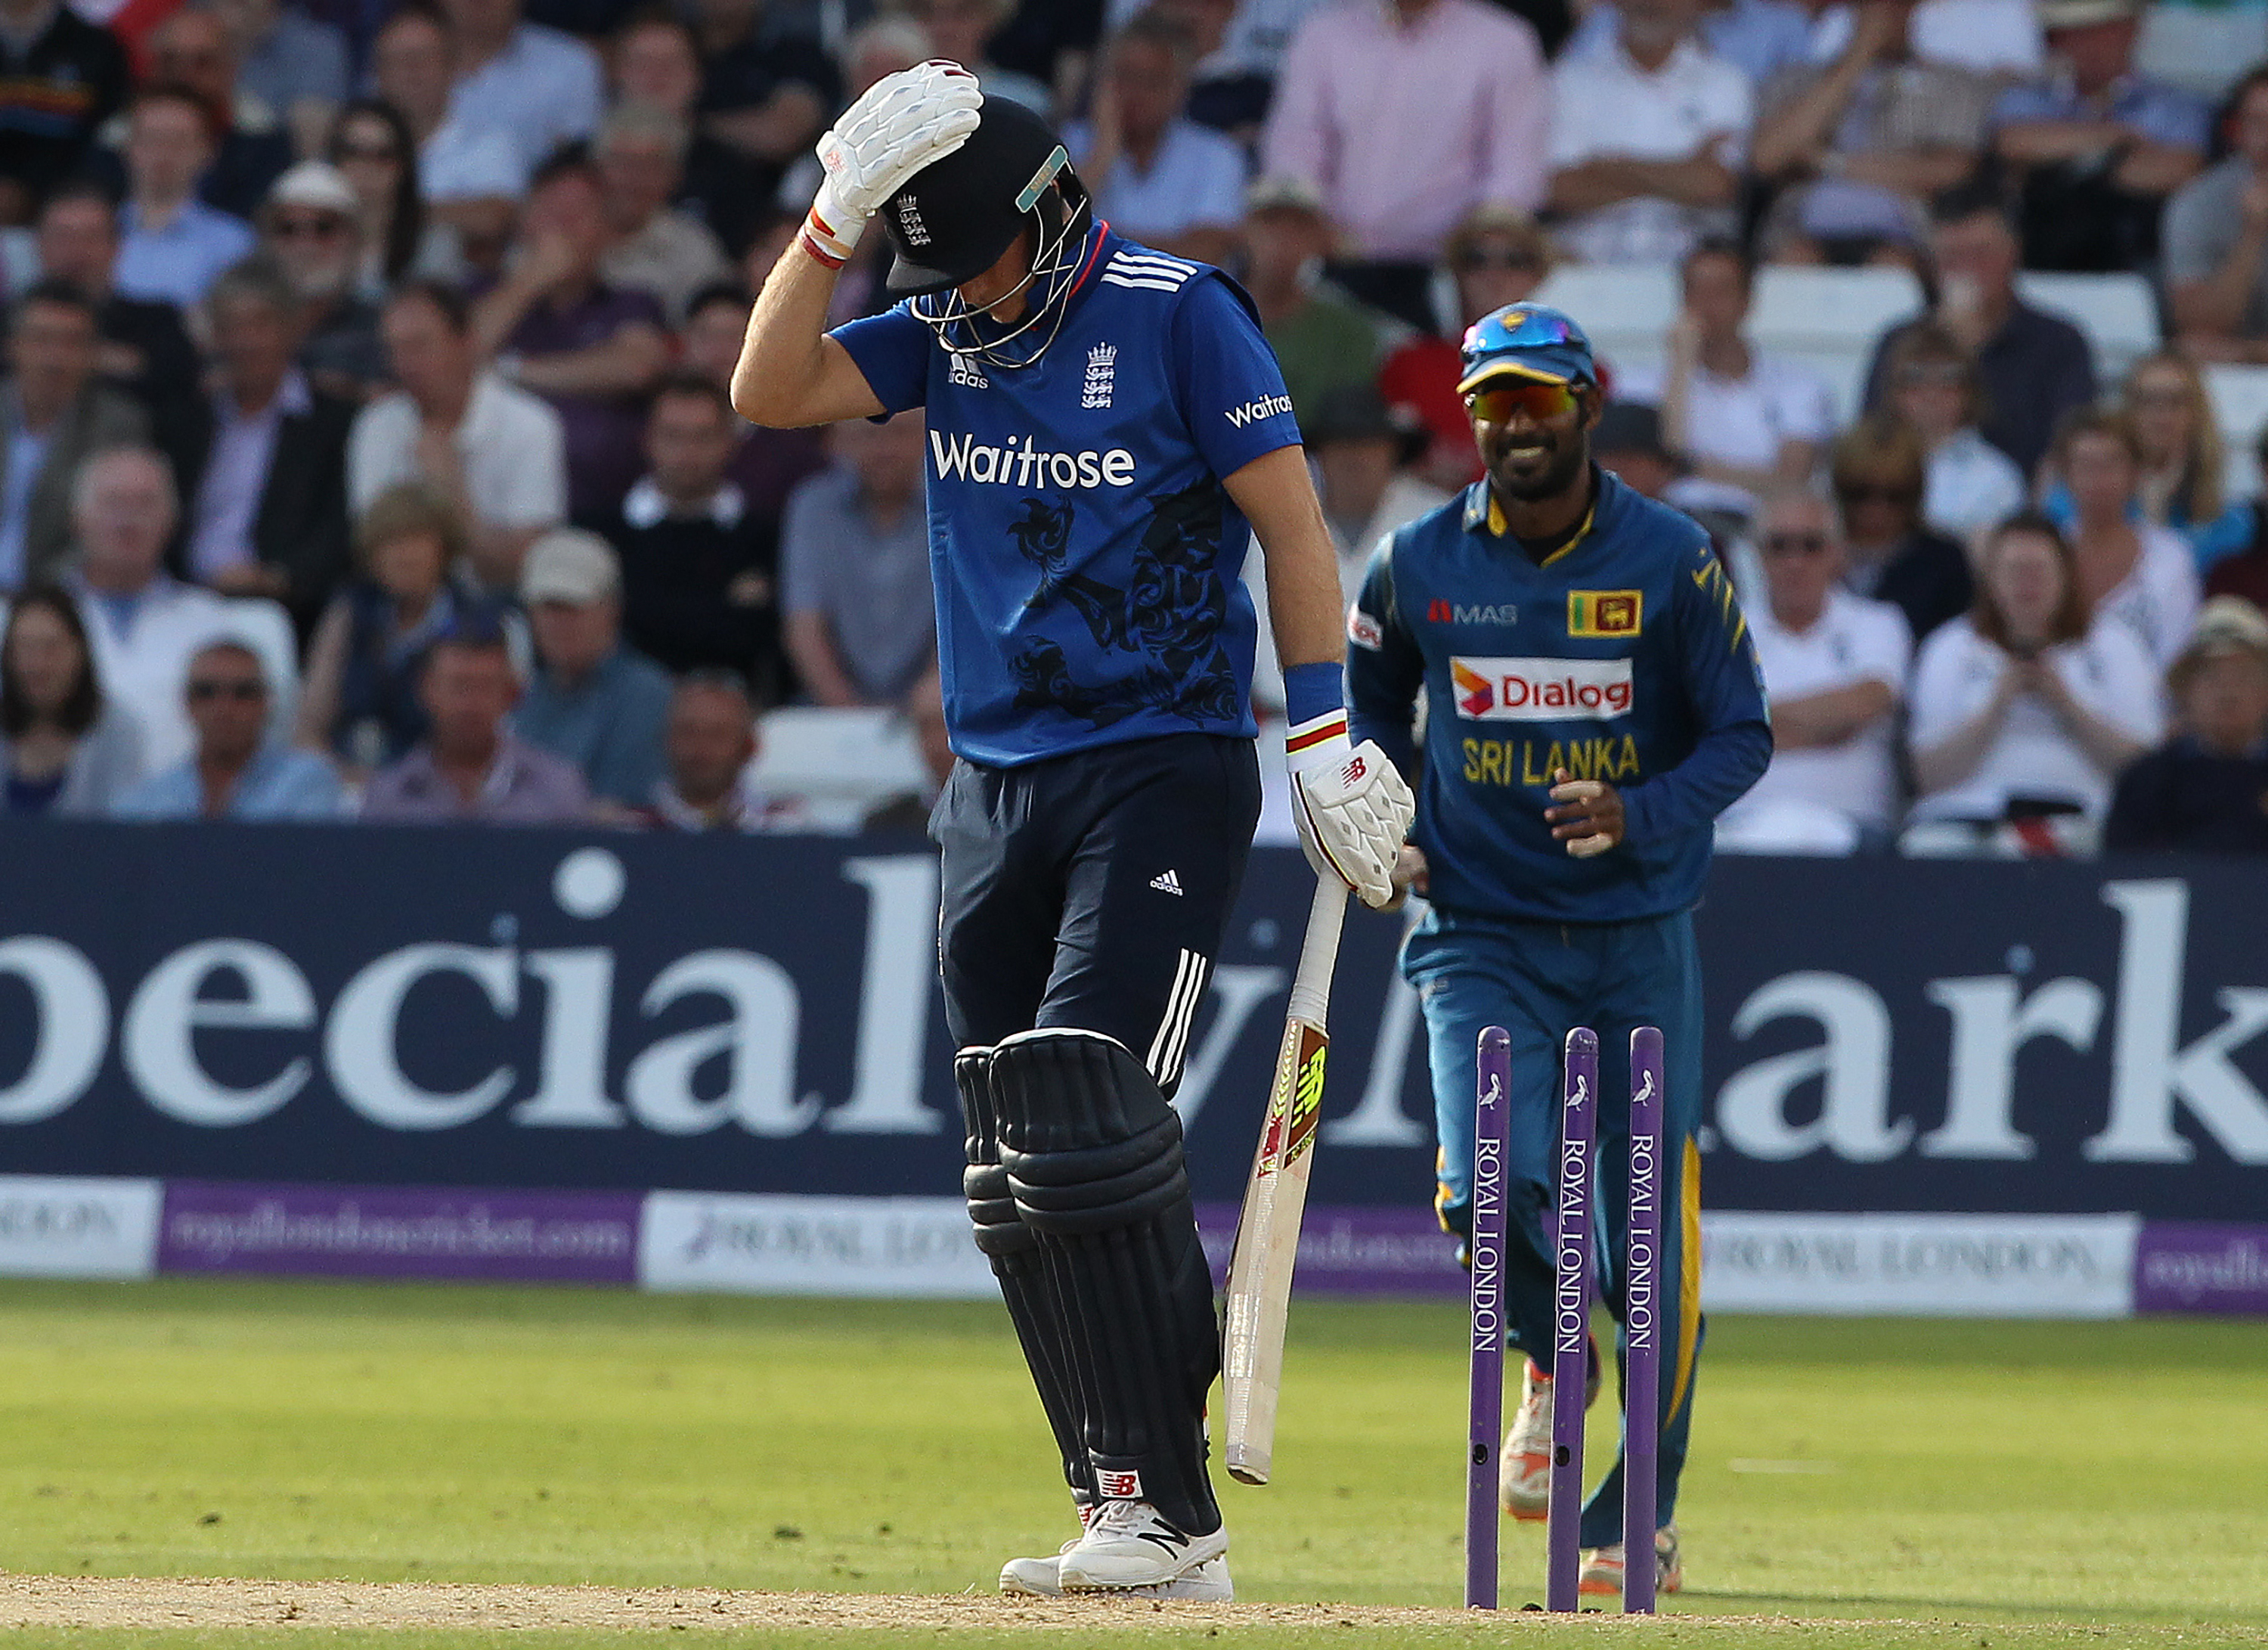 England's Joe Root reacts after being bowled by Sri Lanka's captain Angelo Mathews during play in the first one day international (ODI) cricket match between England and Sri Lanka at Trent Bridge cricket ground in Nottingham, central England, on June 21, 2016. Sri Lanka captain Angelo Mathews top-scored with 73 as his side were held to 286 for nine by England in the first one-day international in Nottingham on Tuesday. / AFP PHOTO / Lindsey PARNABY